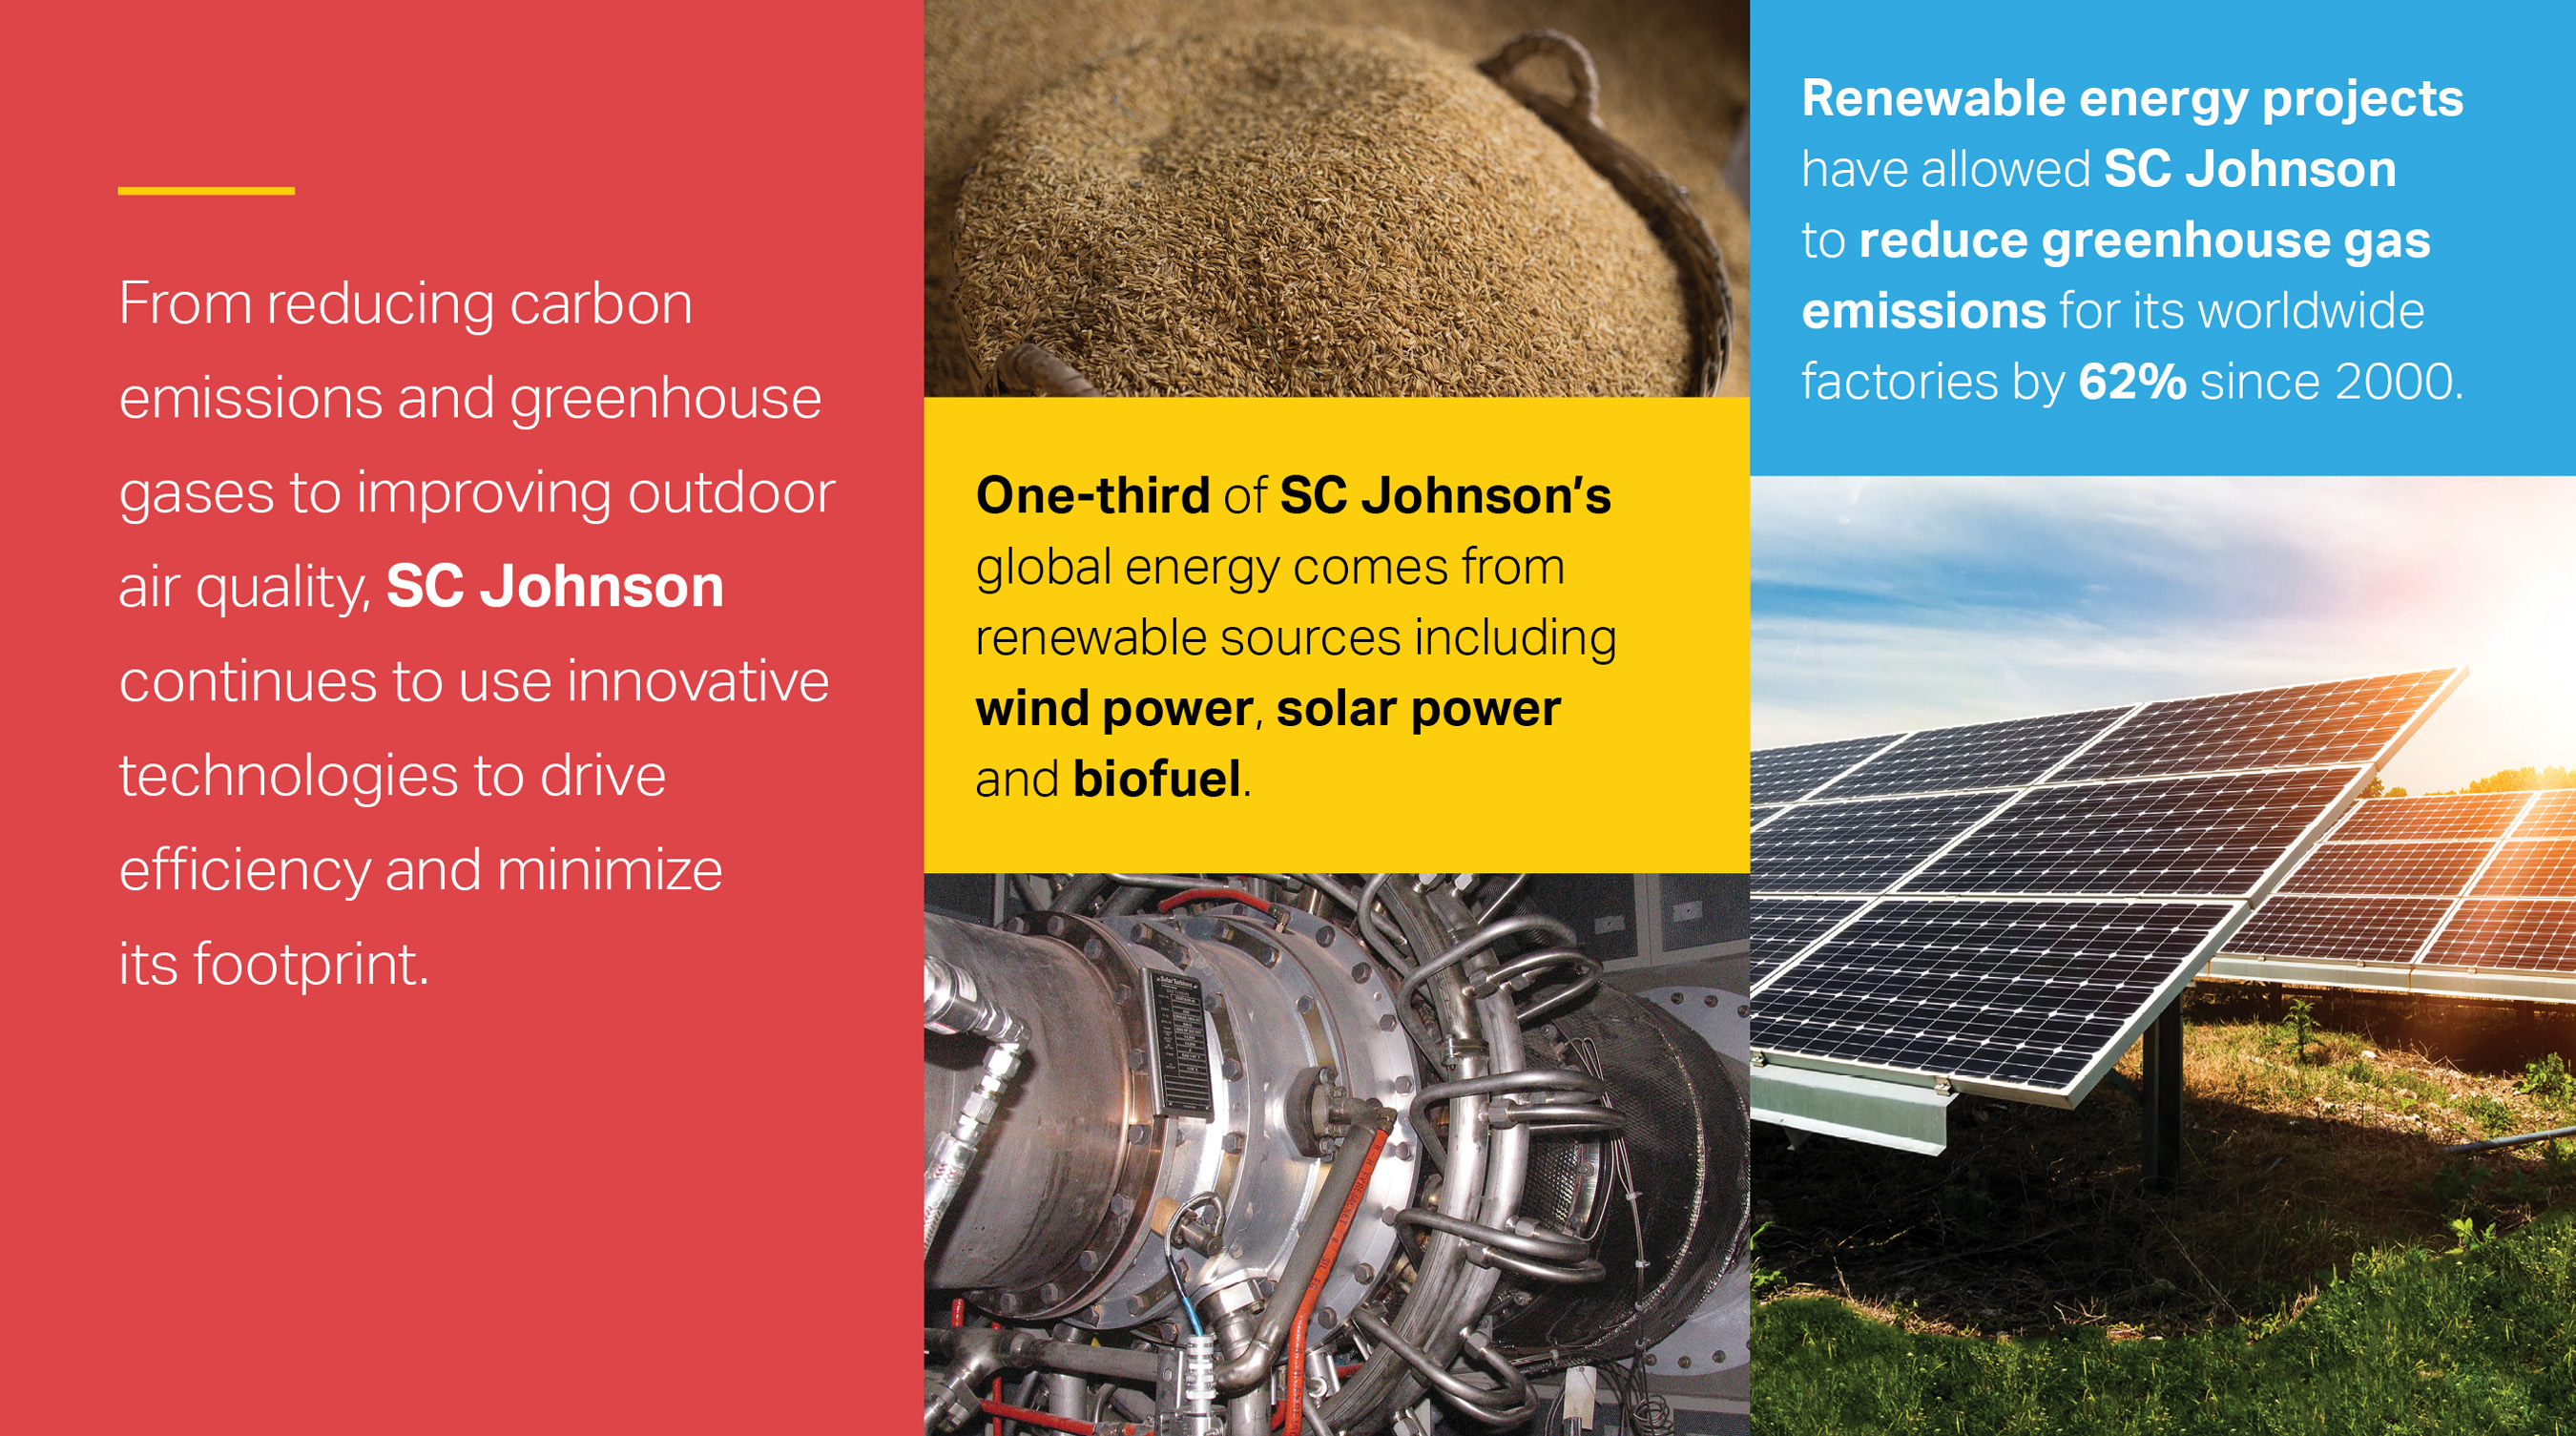 SC Johnson uses innovative technologies to drive efficiency and minimize its footprint.